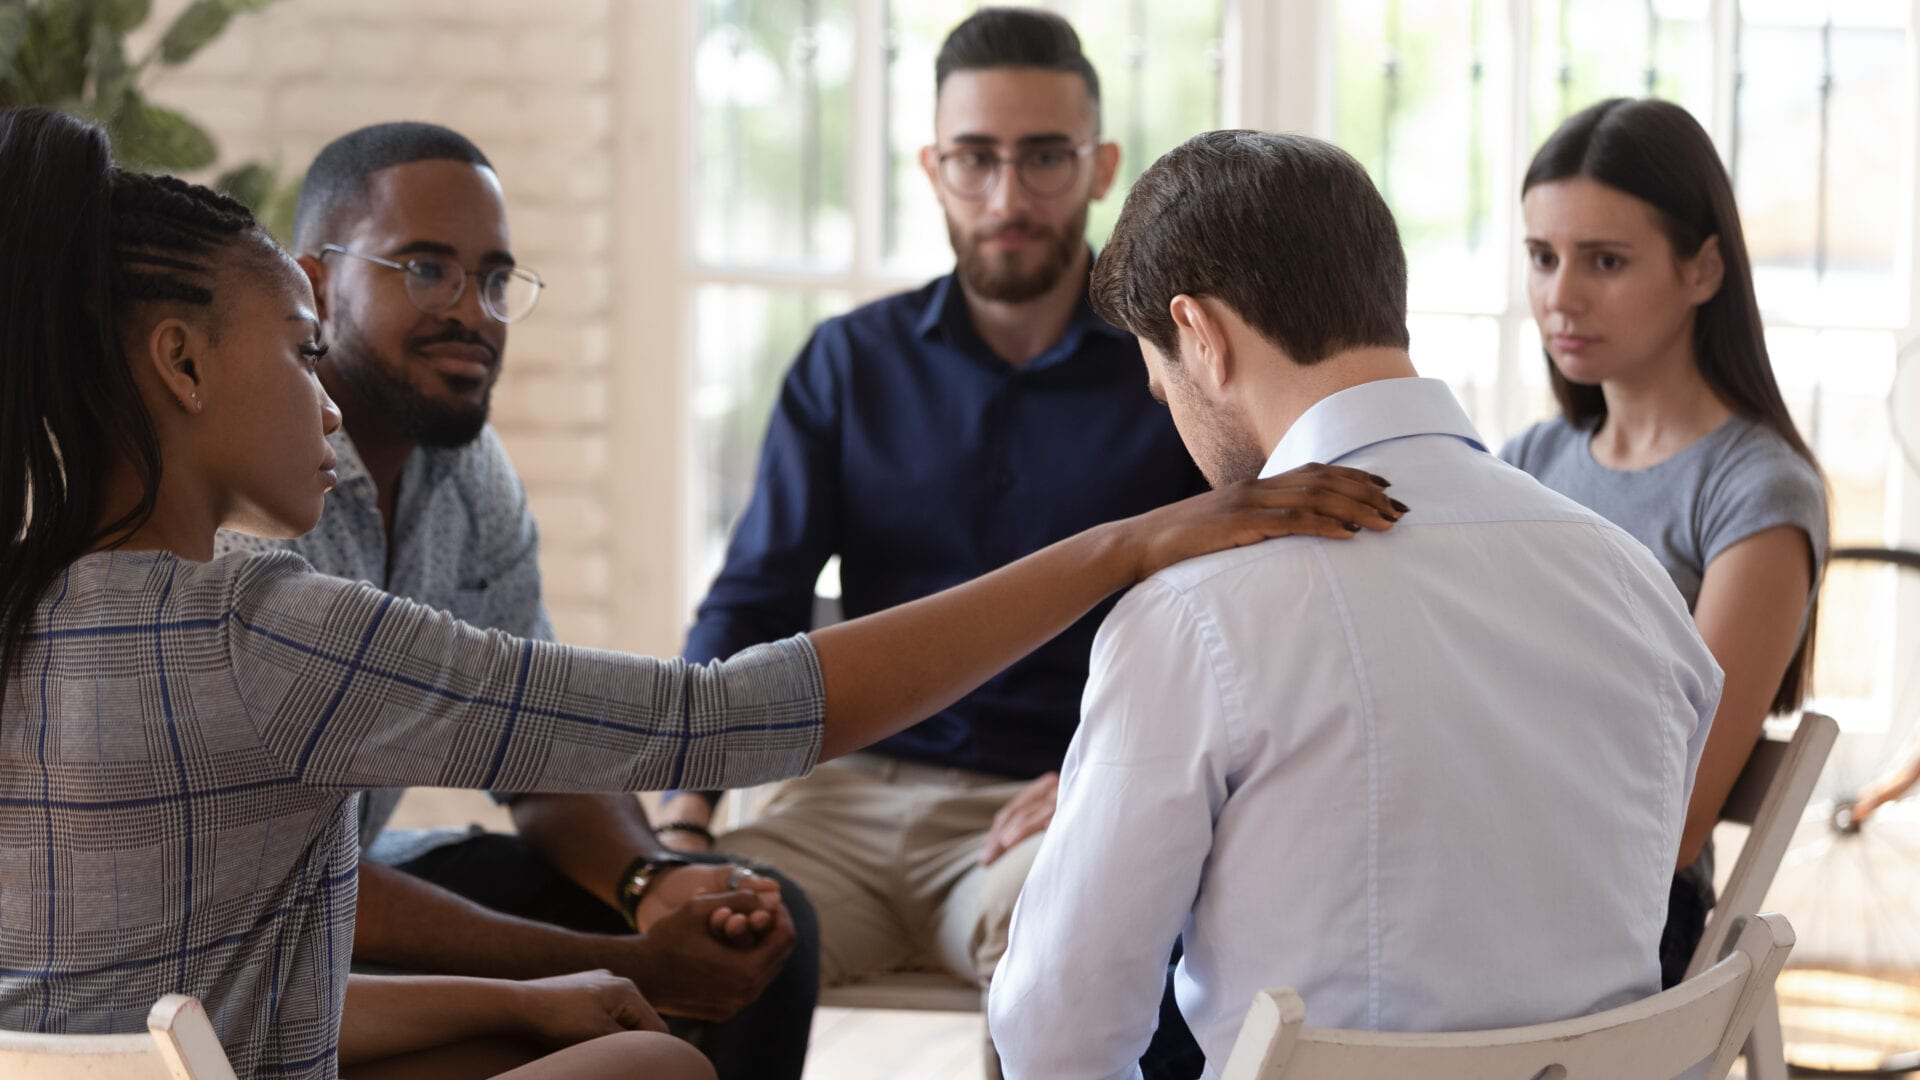 Rear view at upset man feel pain depression problem addiction get psychological support of counselor therapist coach diverse people friend group help patient during therapy counseling session concept.